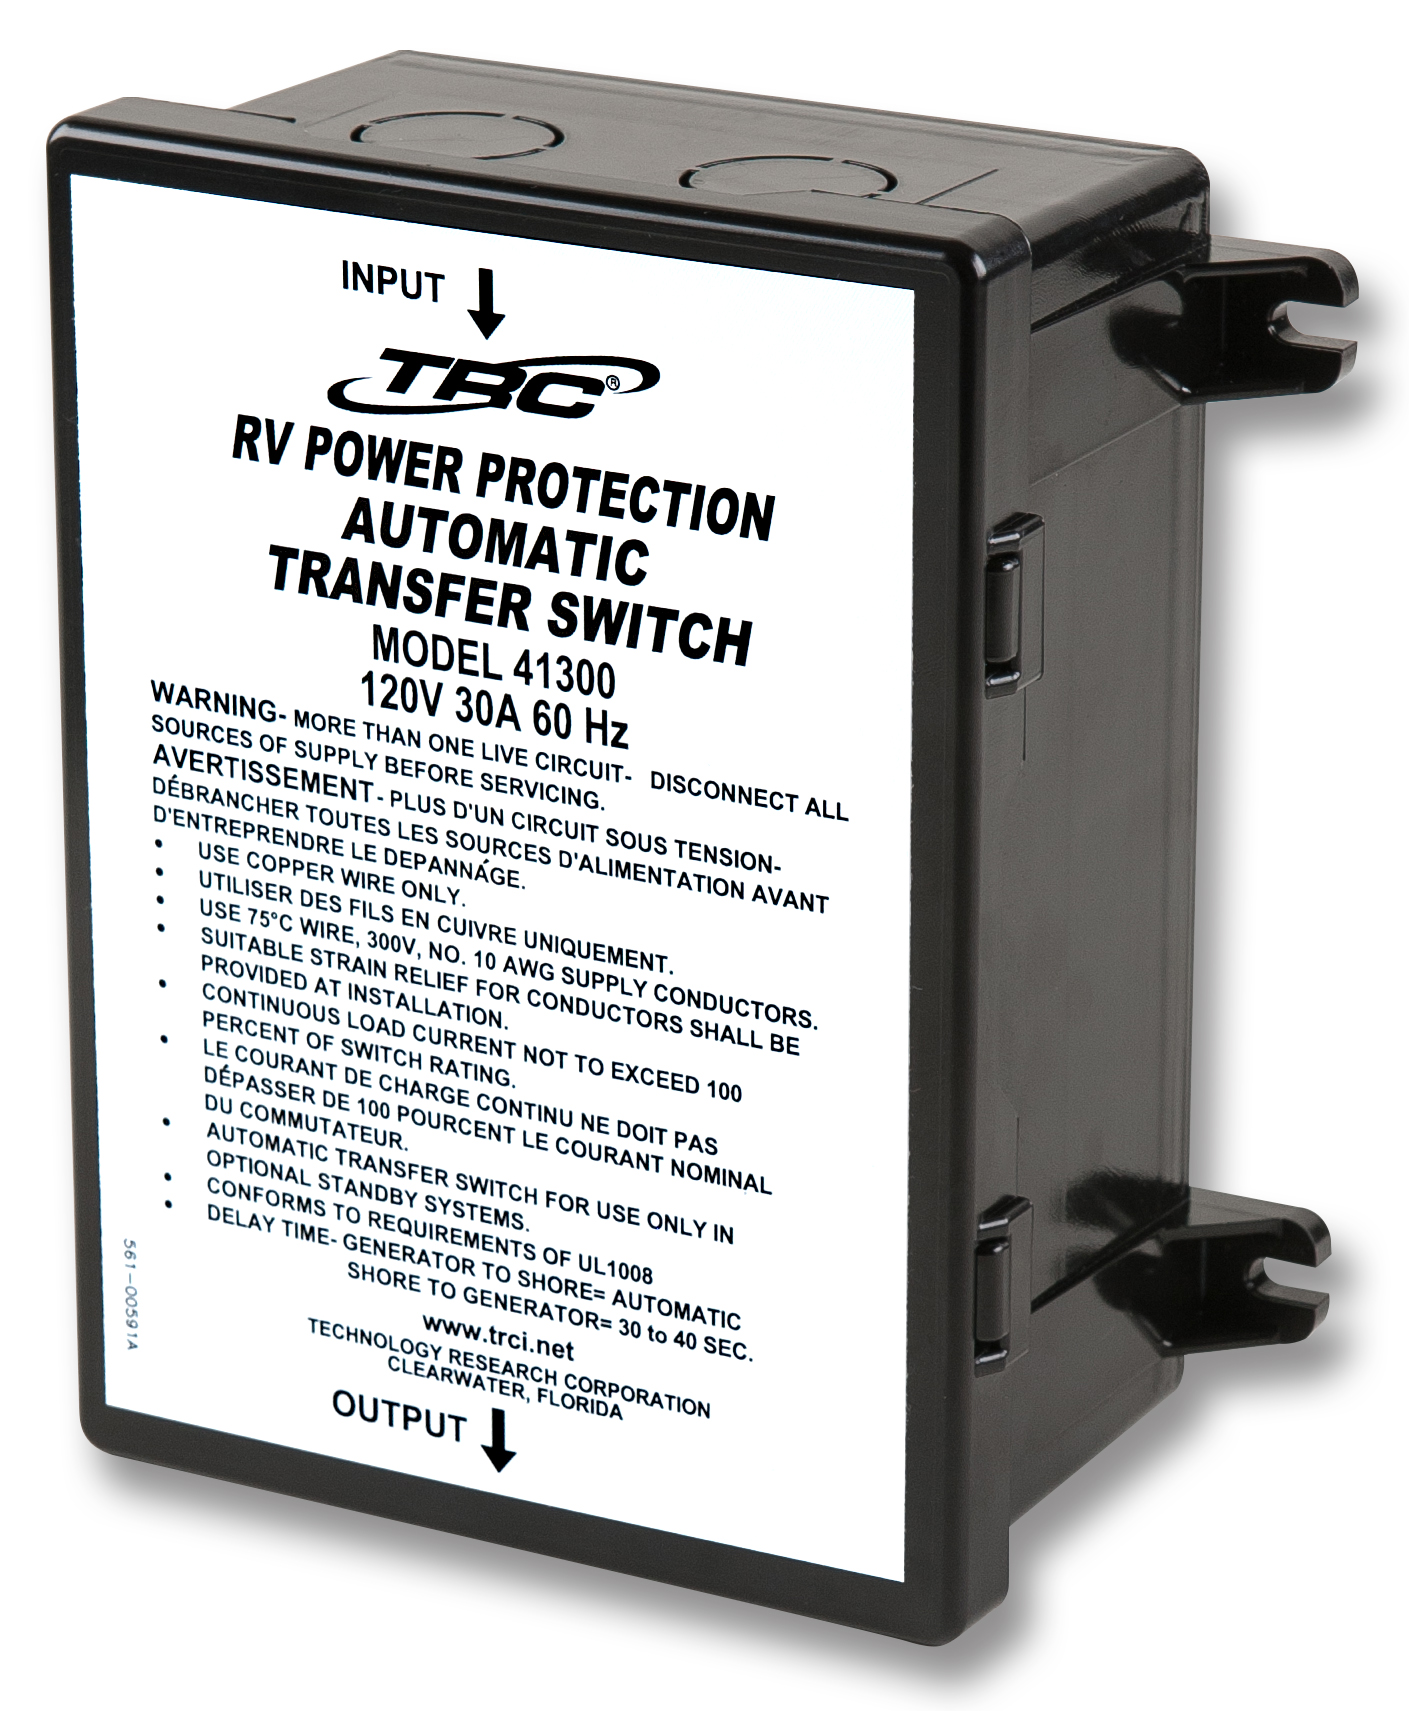 41300 Technology Research Corp Power Transfer Switch Transfer Power